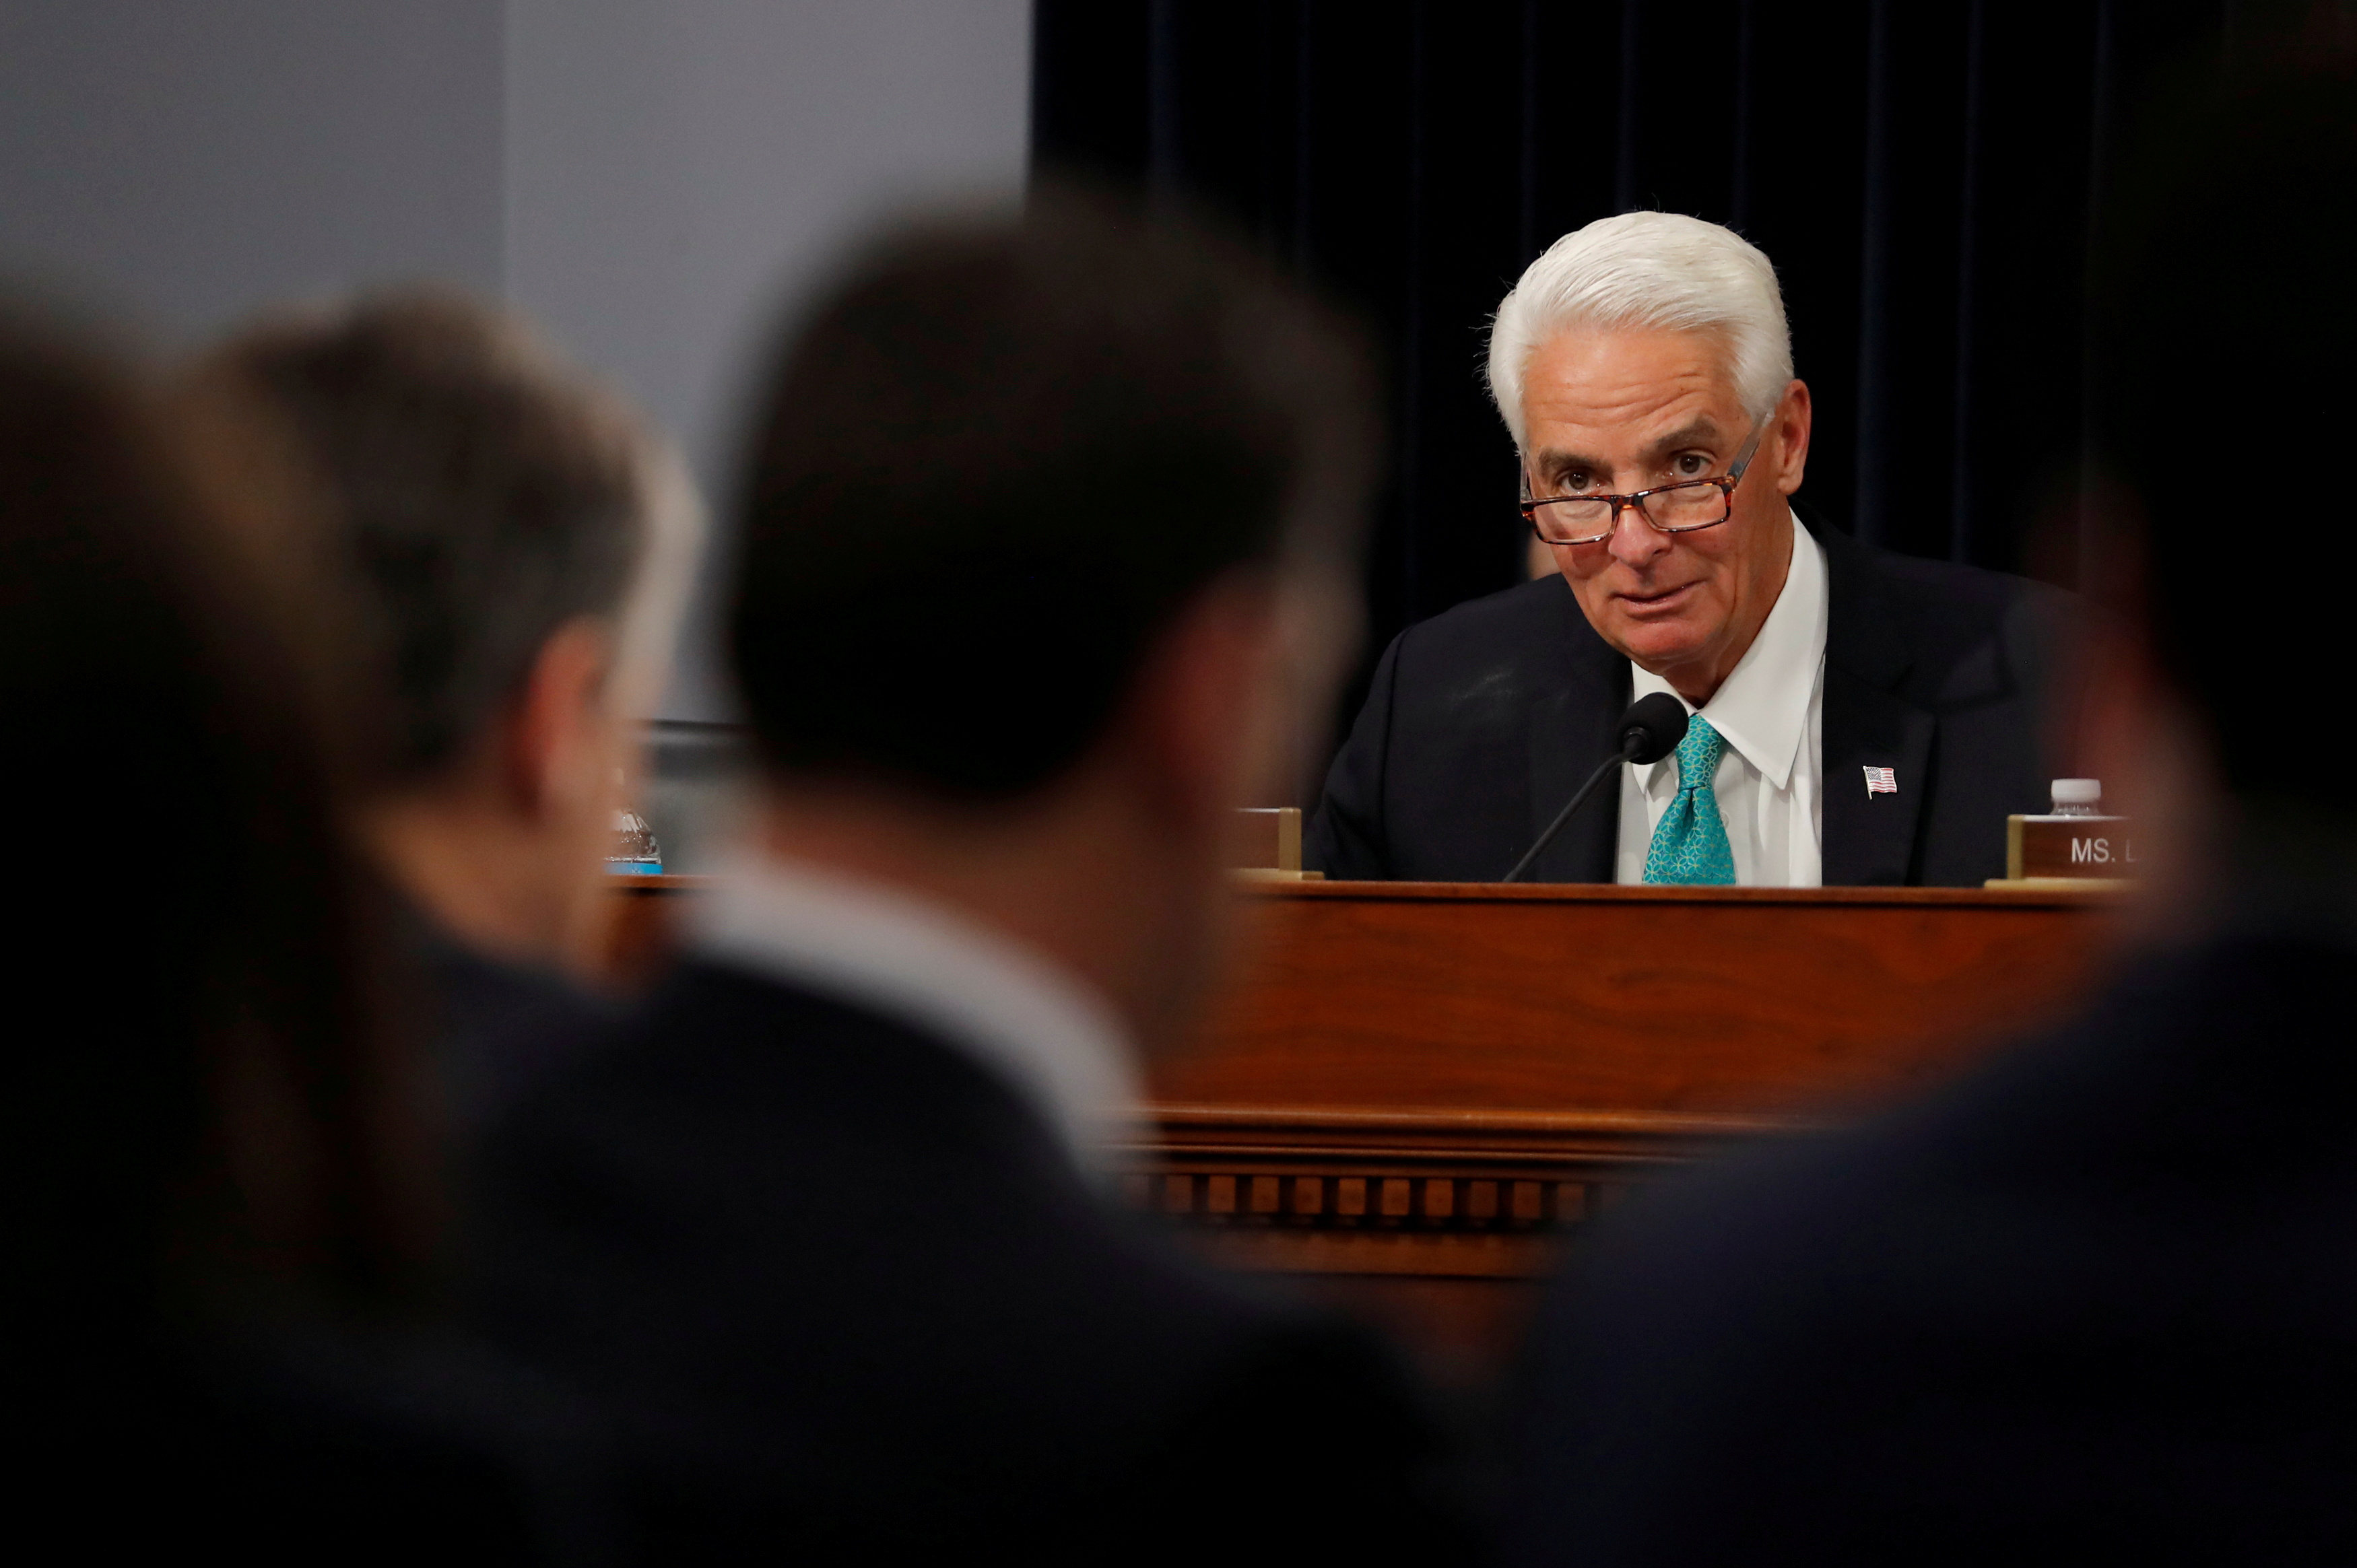 U.S. Rep. Charlie Crist (D-FL) listens to FBI Director Christopher Wray testify on the FBI's budget request before a House Appropriations Subcommittee hearing on Capitol Hill in Washington, U.S., April 4, 2019. REUTERS/Carlos Barria/File Photo